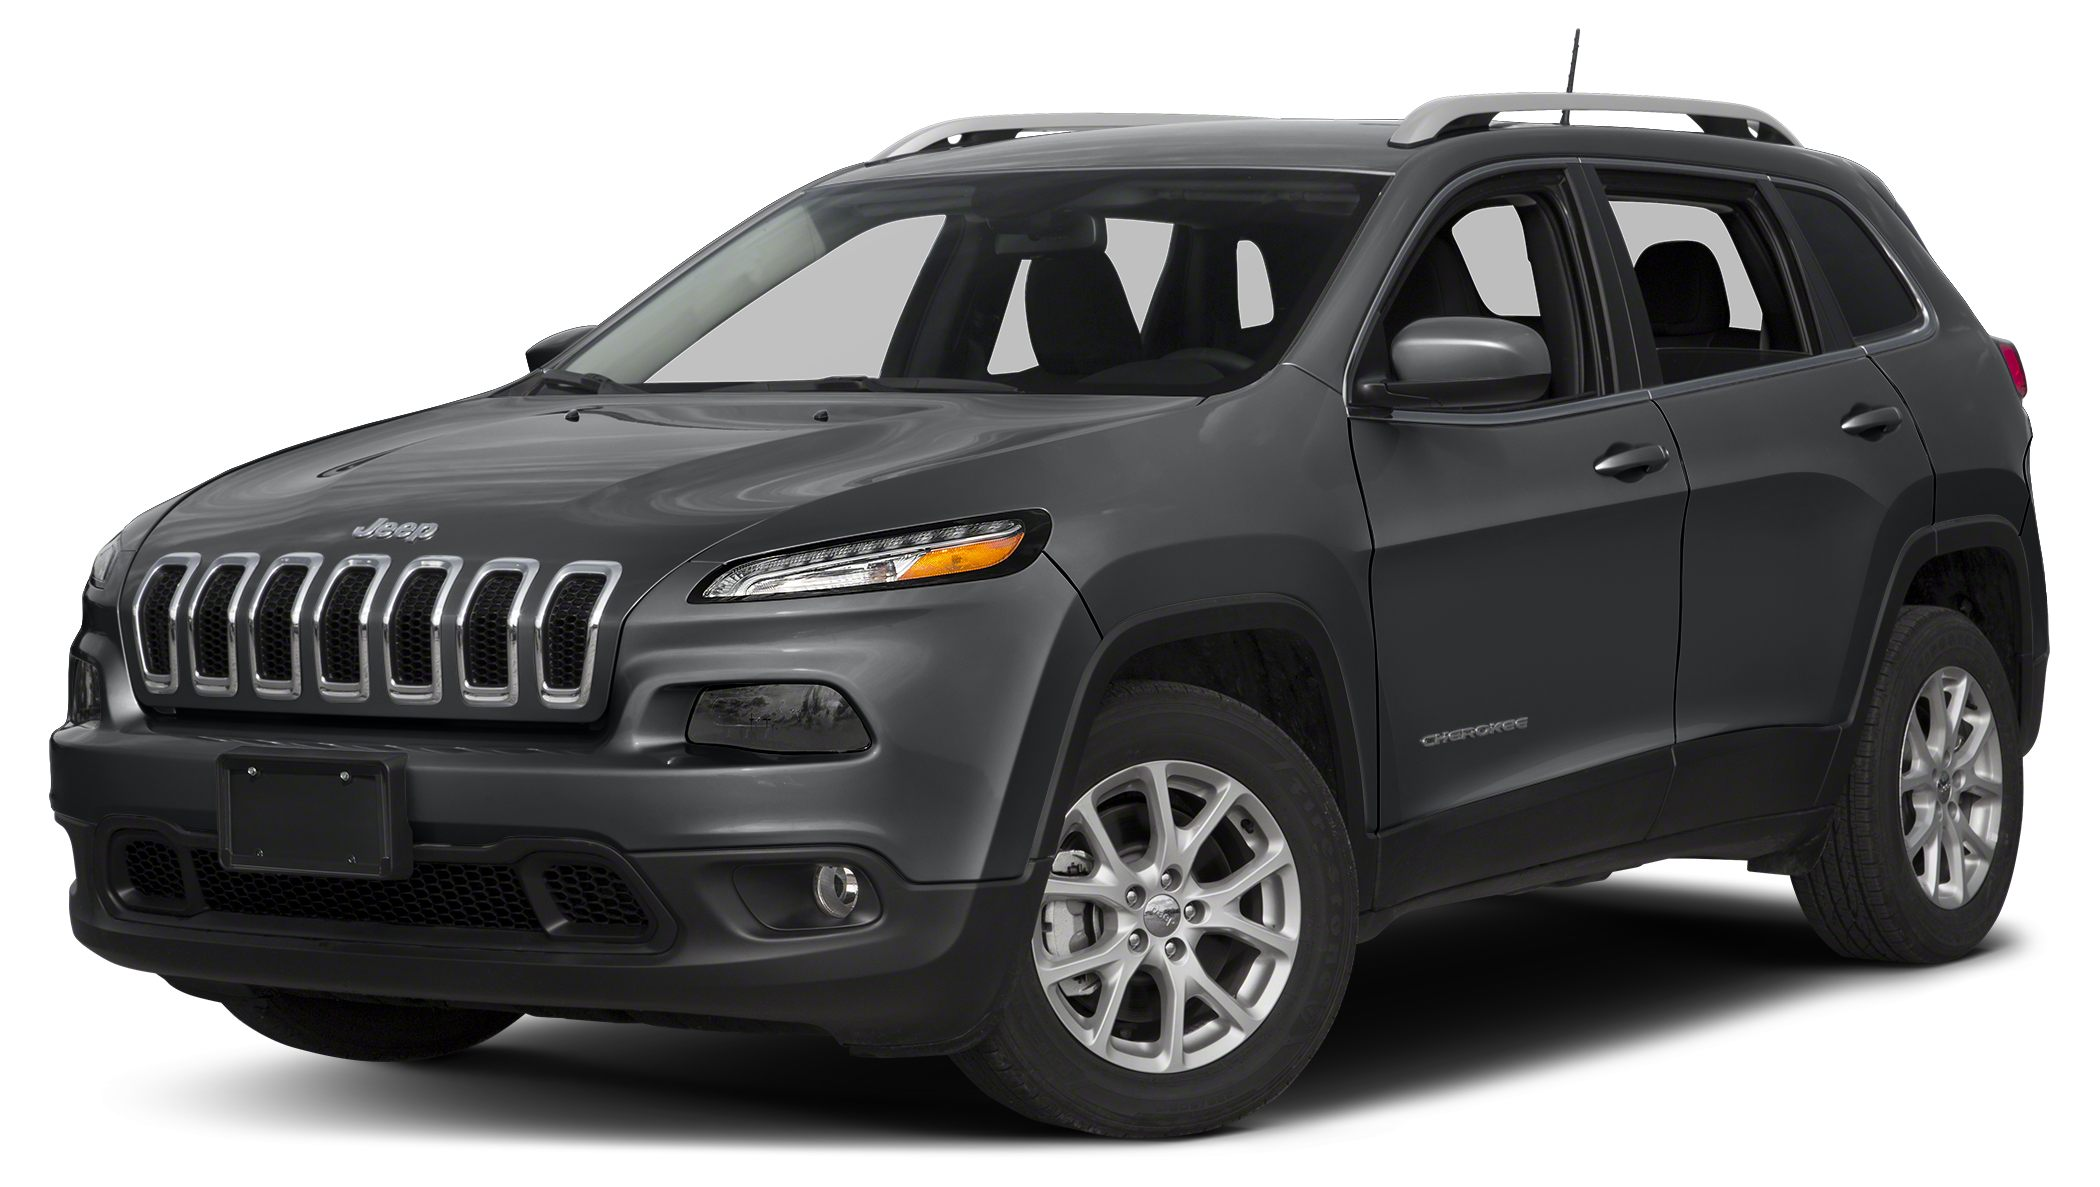 2016 Jeep Cherokee Latitude CARFAX 1-Owner EPA 28 MPG Hwy21 MPG City Latitude trim Heated Seat